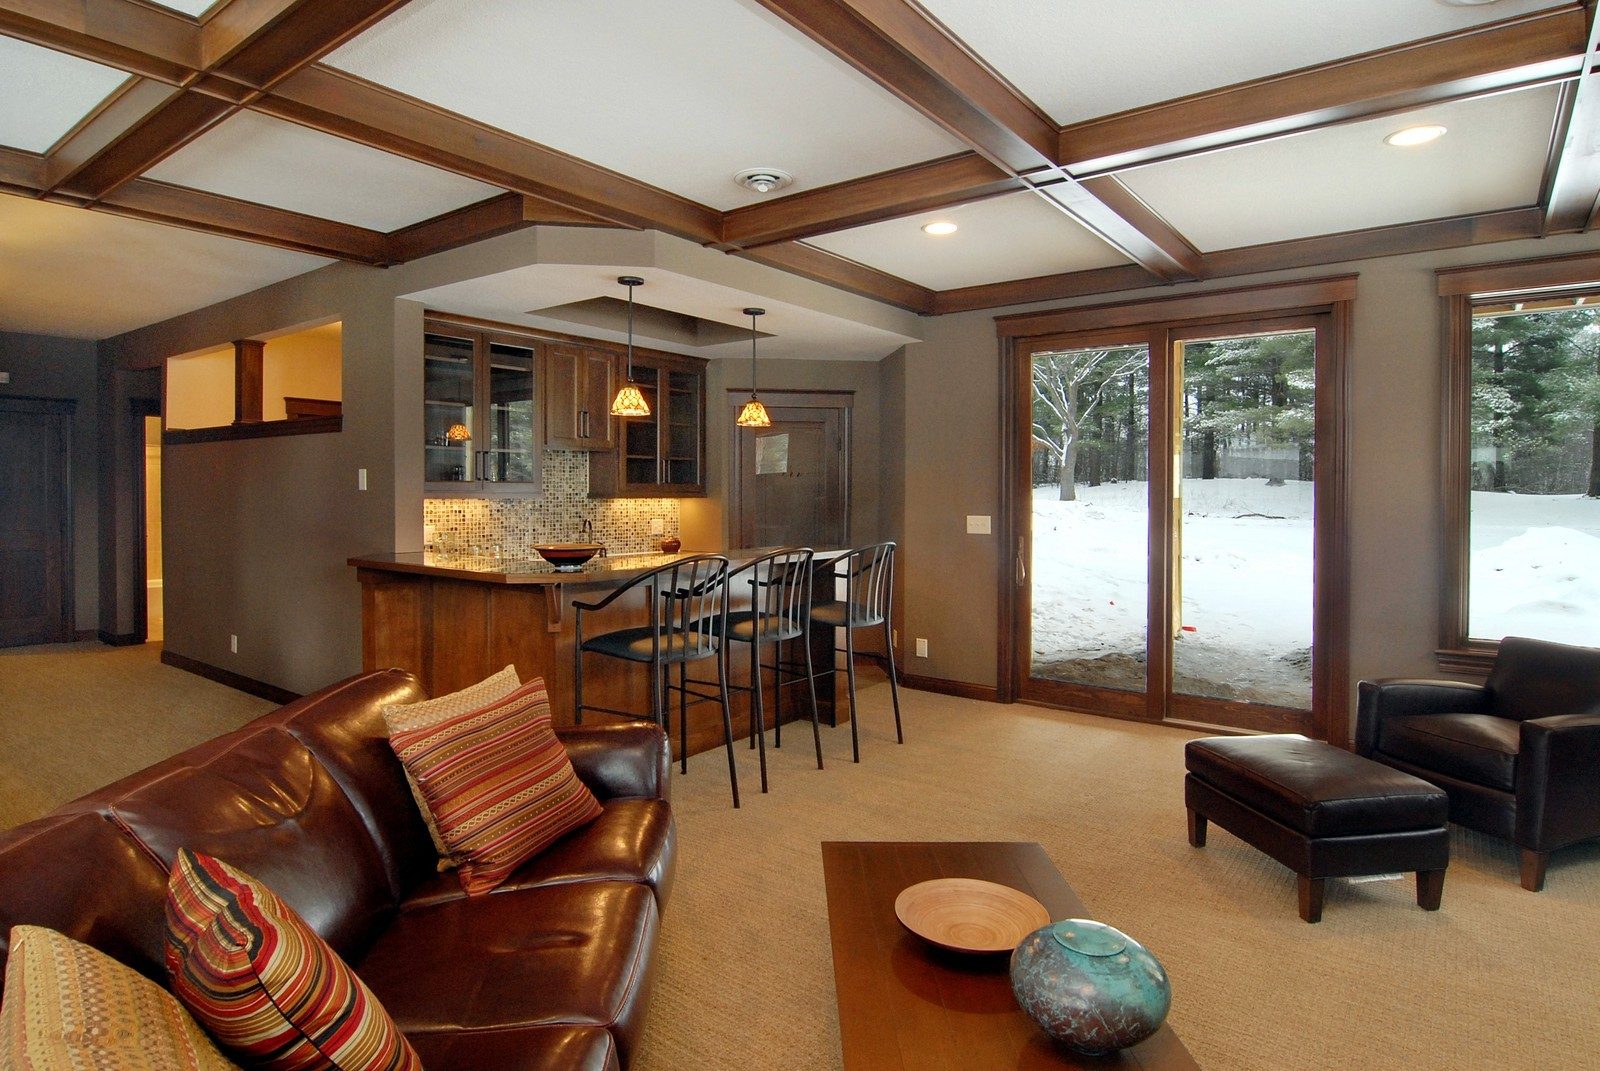 Real Estate Photography - 13220 24th Street North, West Lakeland, MN, 55082 - Recreational Area